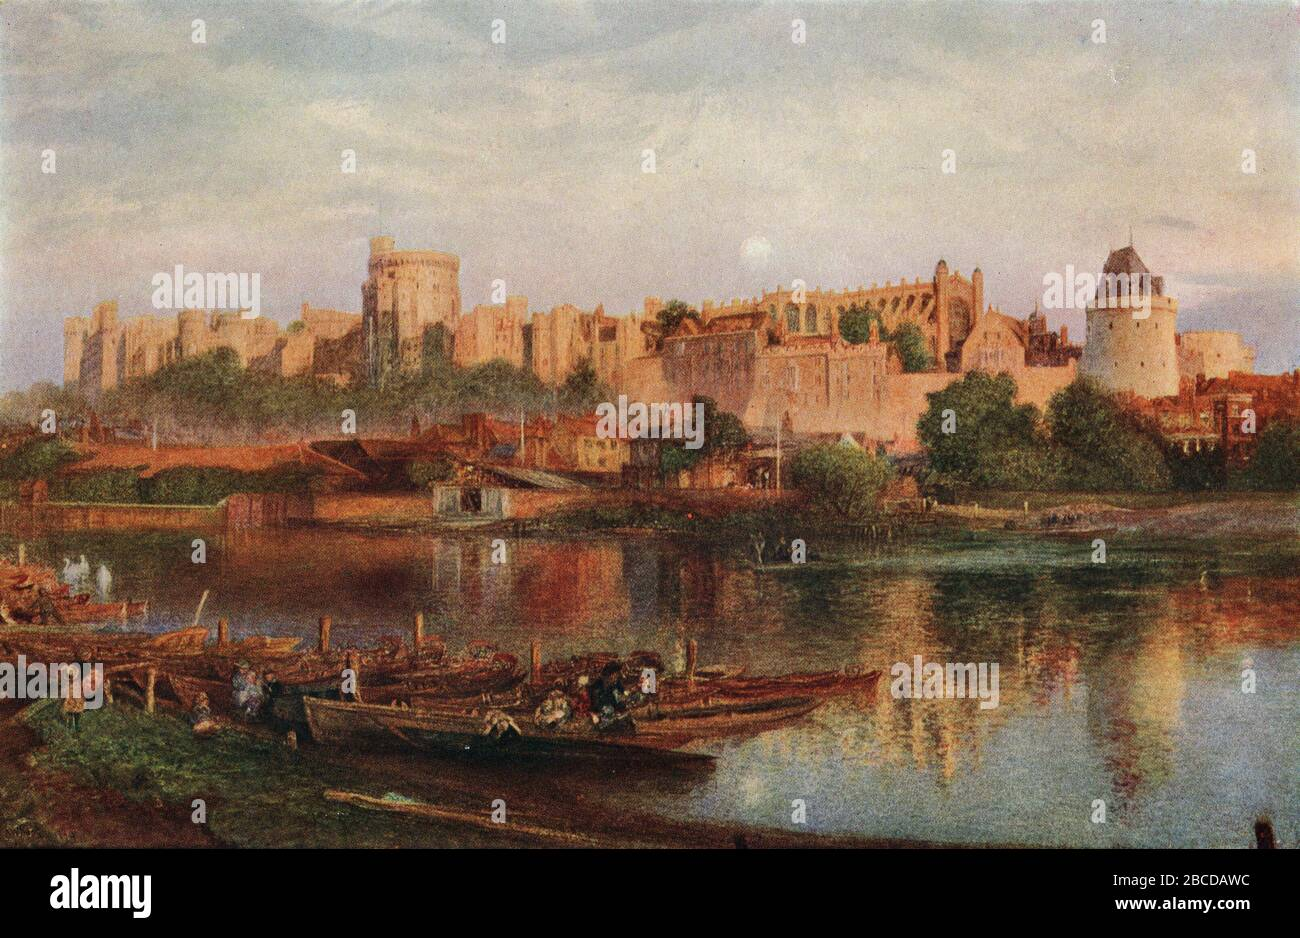 Windsor Castle in the 19th Century, from a watercolour by Alfred William Hunt RWS 1830 - 1896 Stock Photo